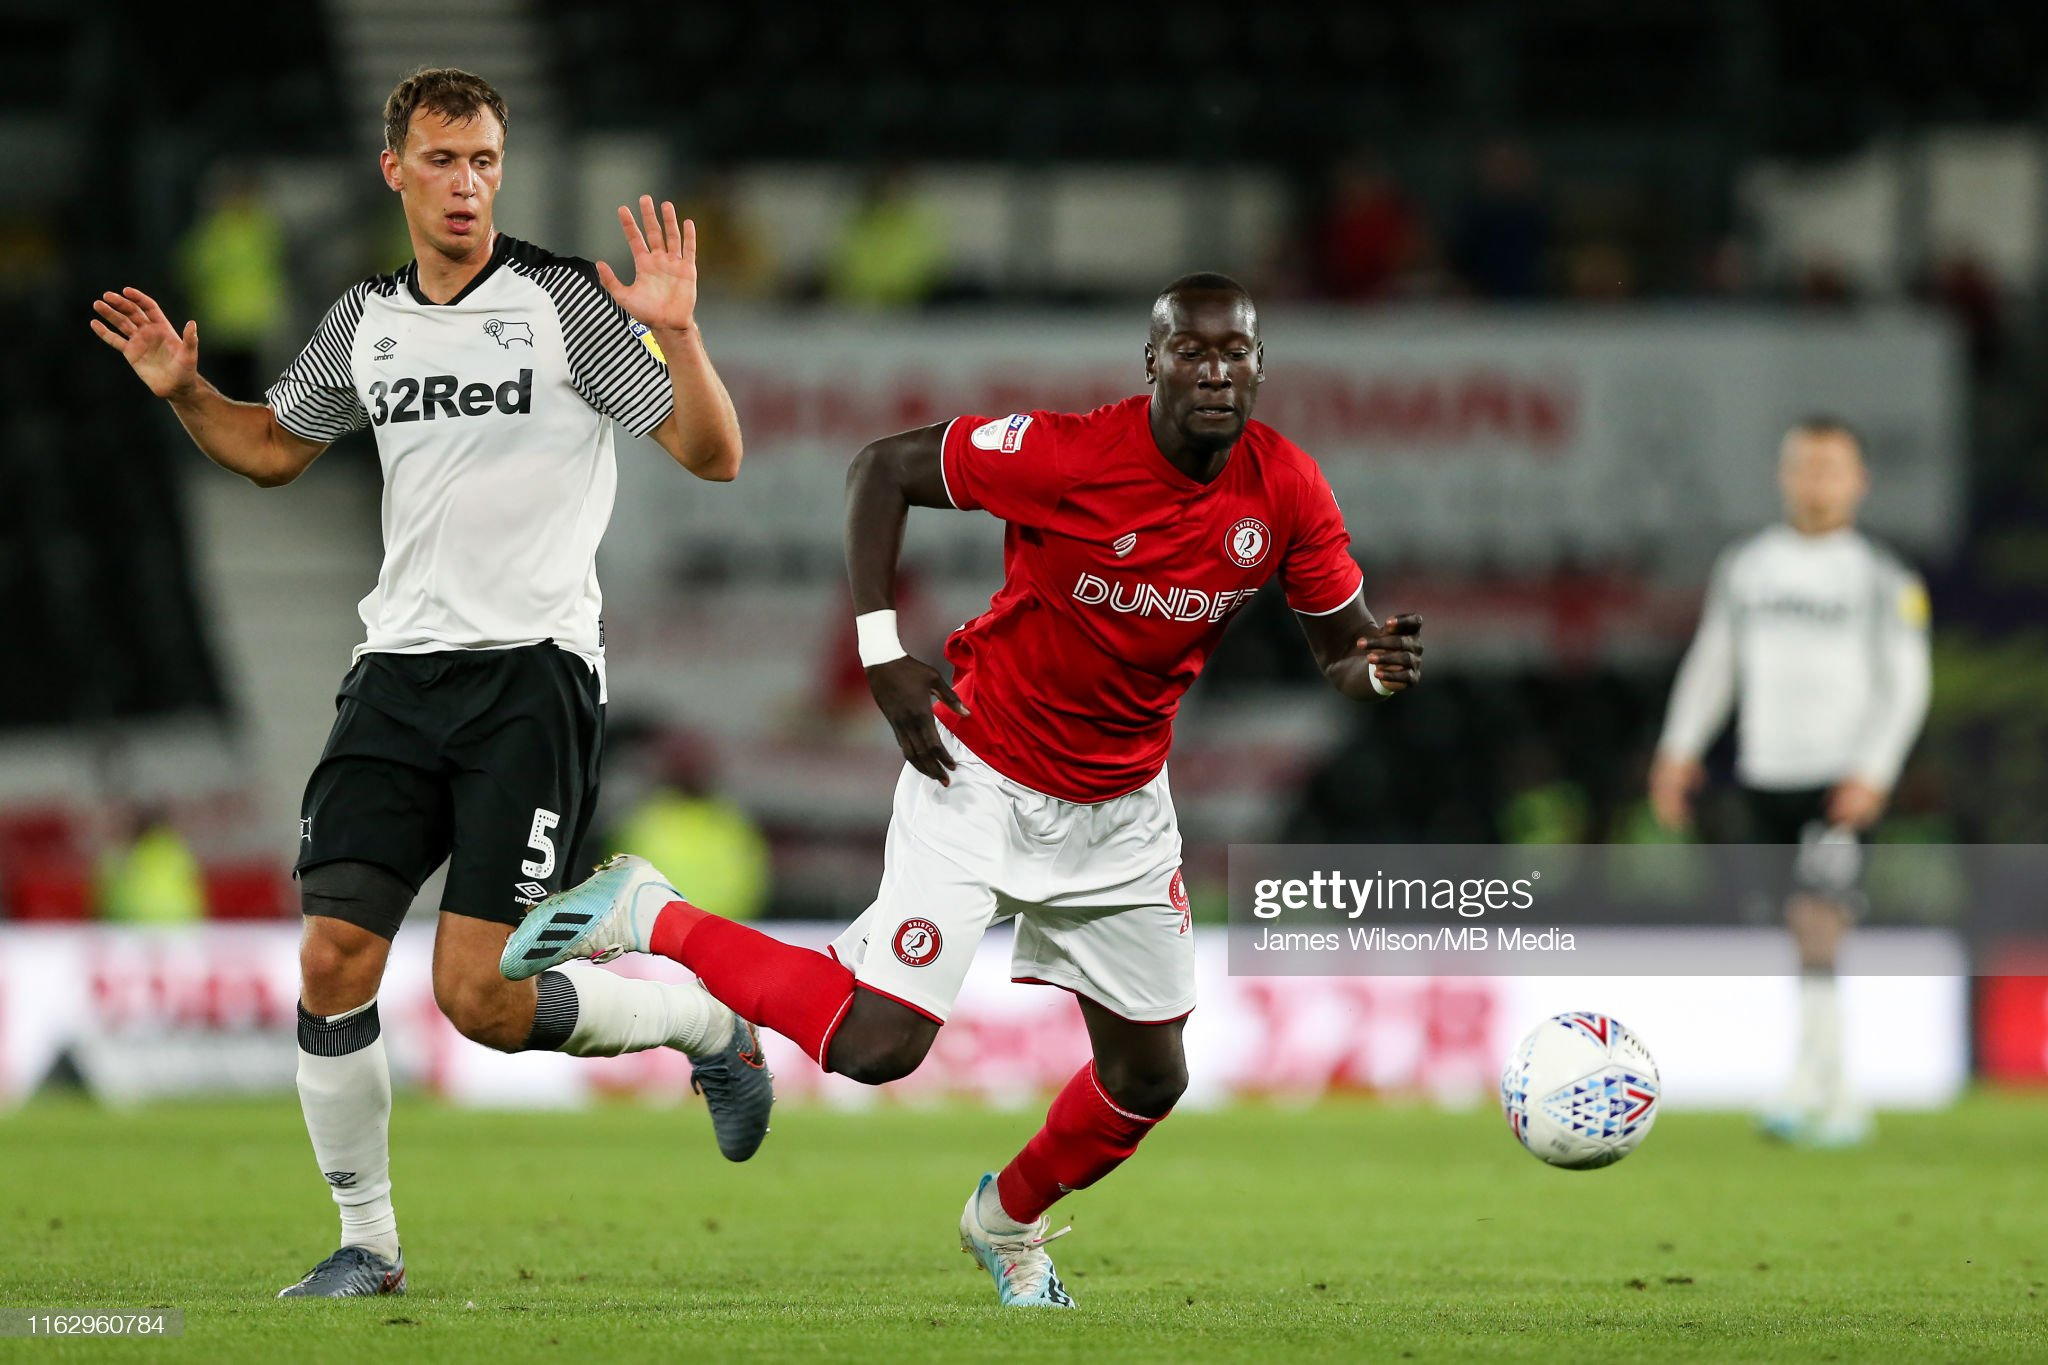 Bristol City v Derby preview, prediction and odds